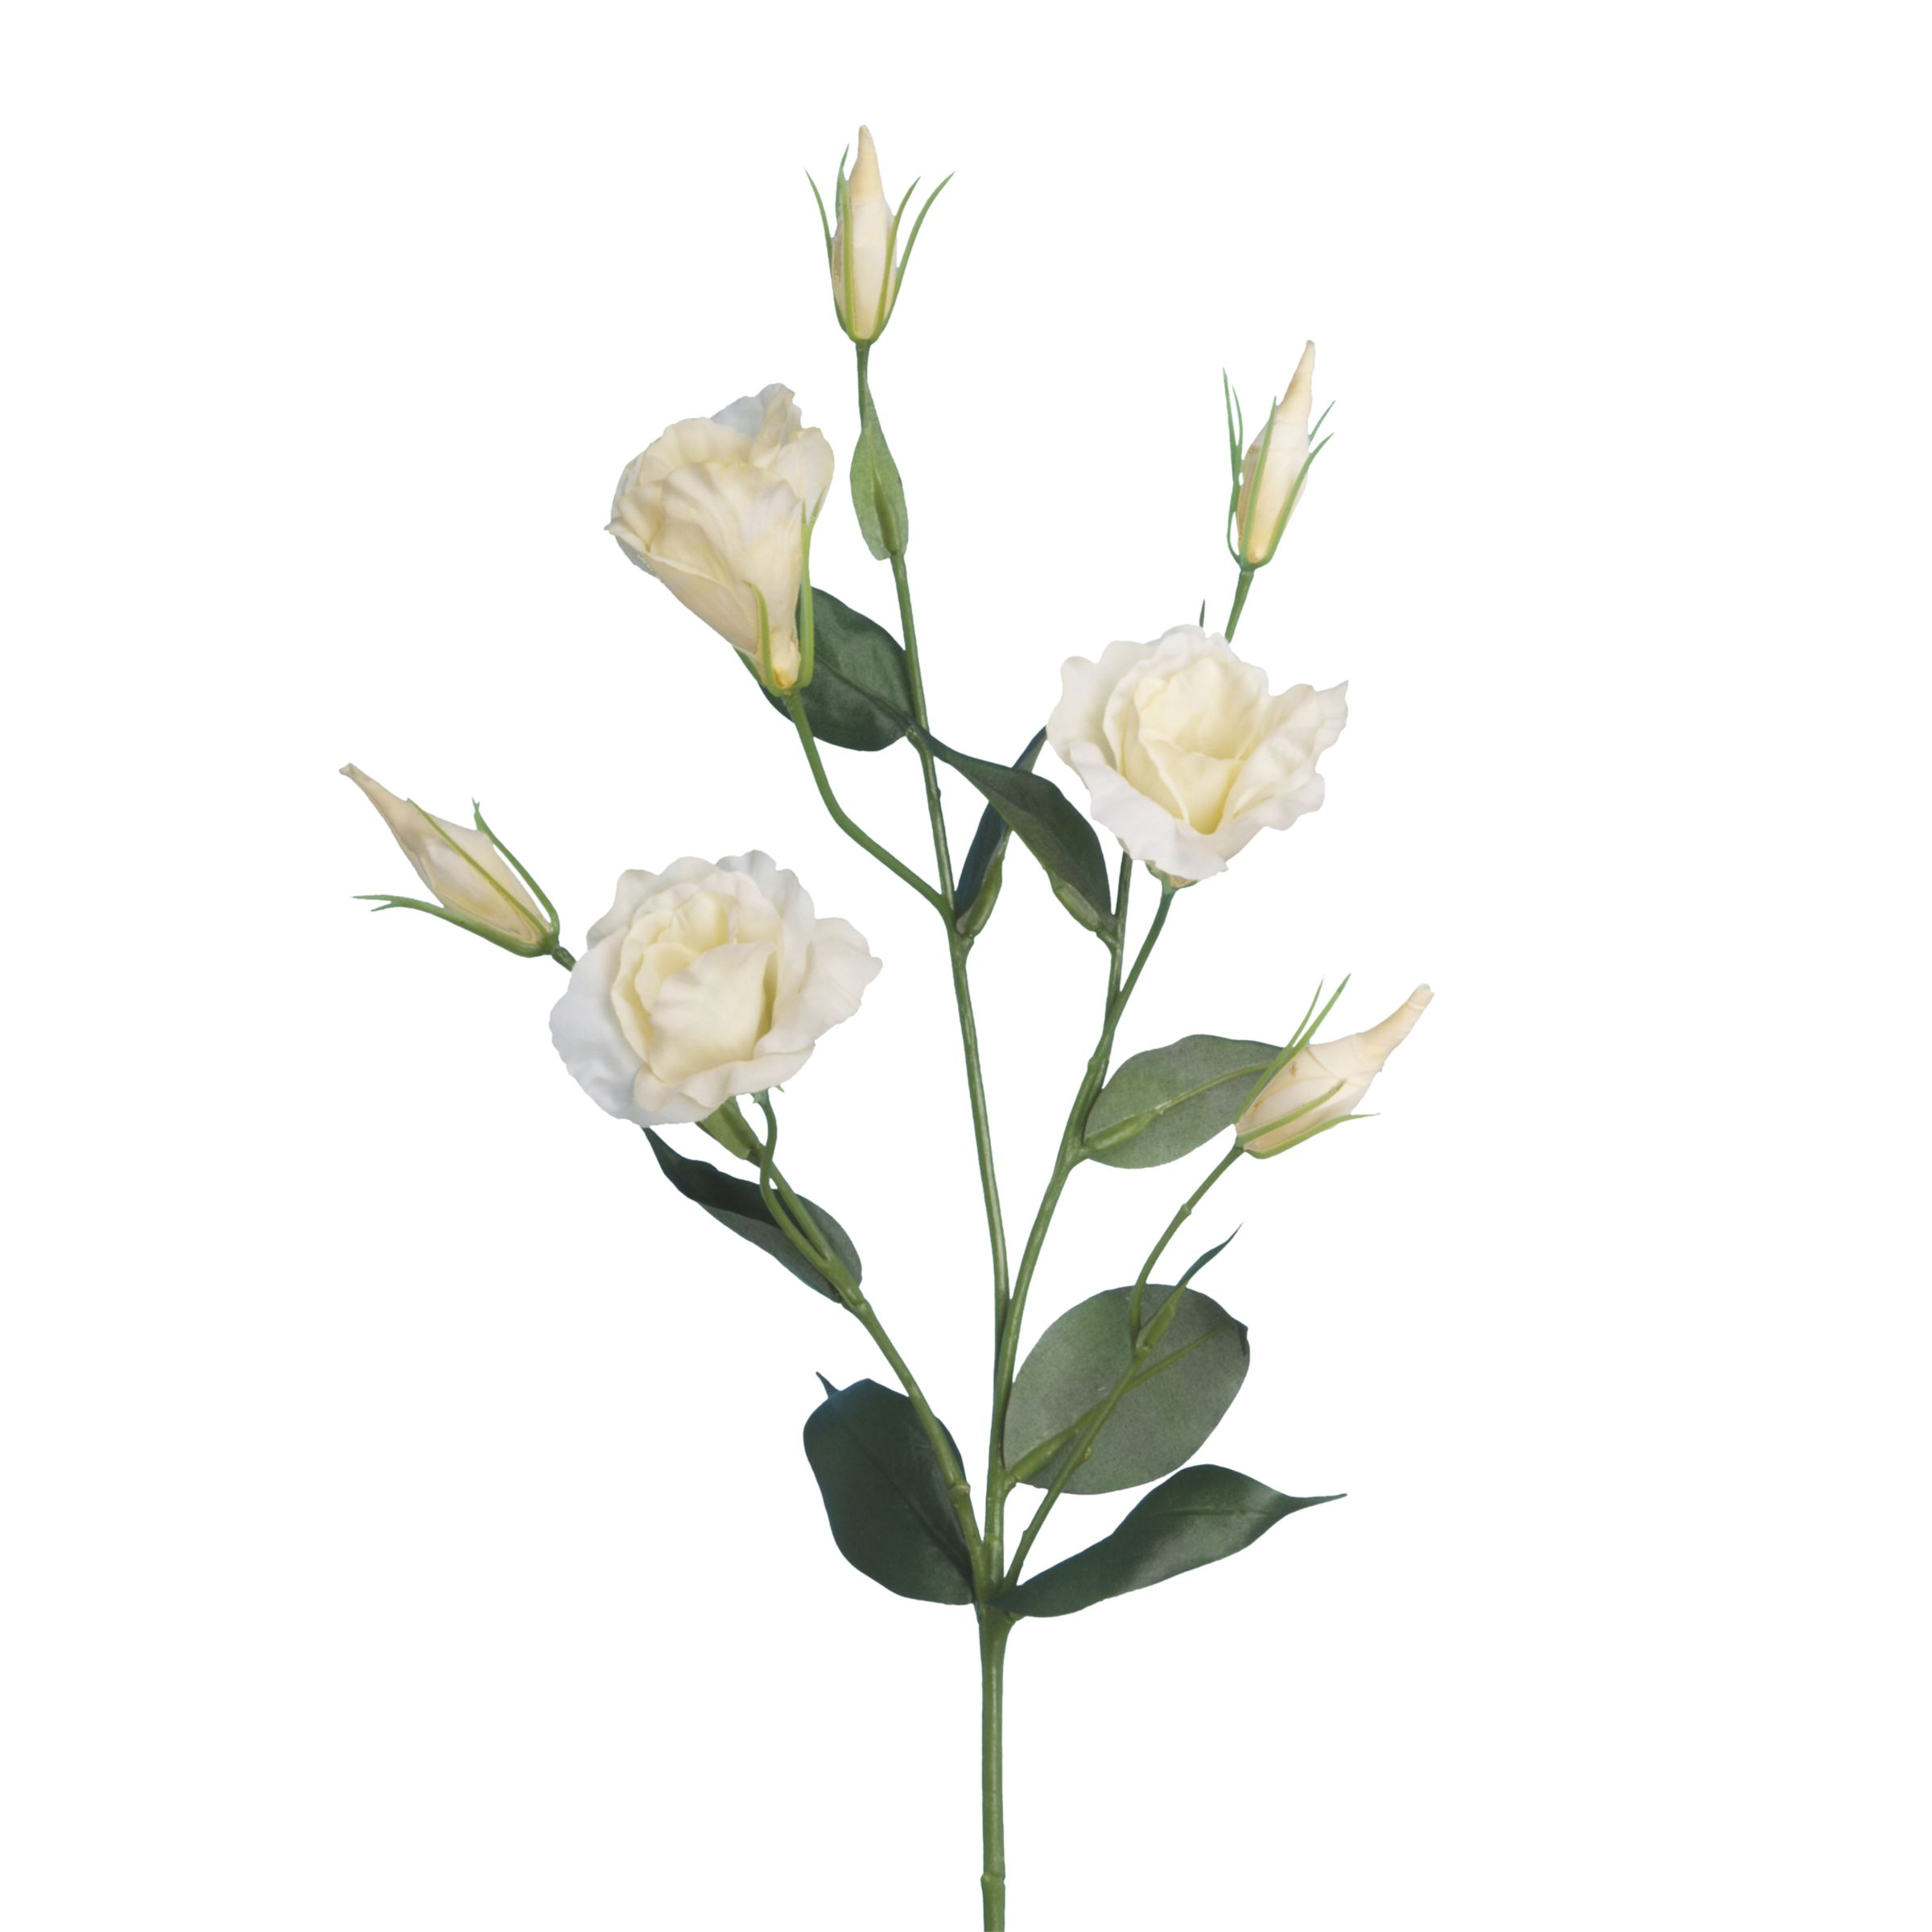 Floralsilk Floralsilk Lisianthus Spray, Cream